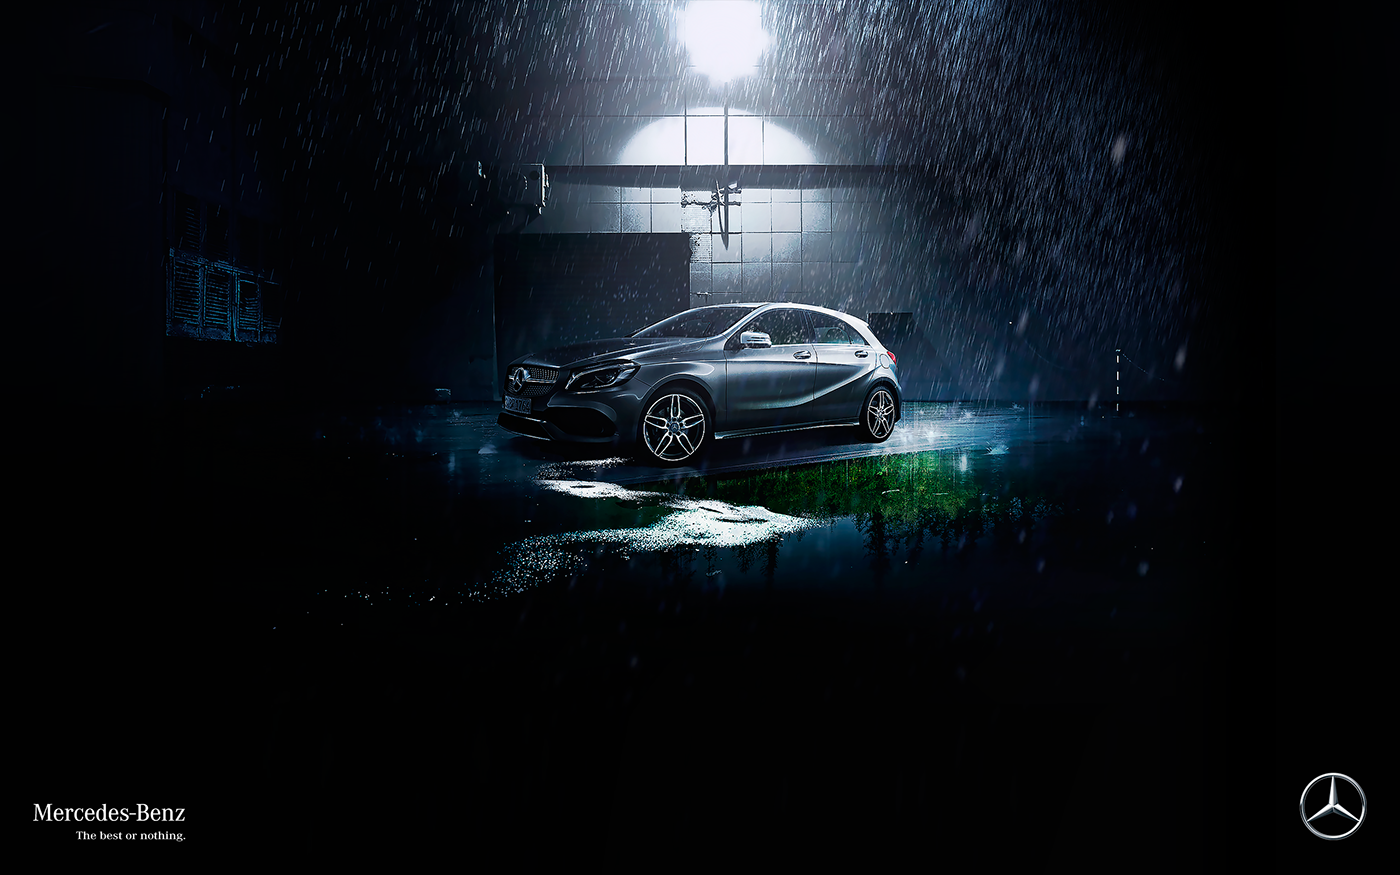 Mercedes Benz car retouch photomanipulation design automotive   digital illustration drive the best or nothing Vehicle night mountain creative retouch Driving